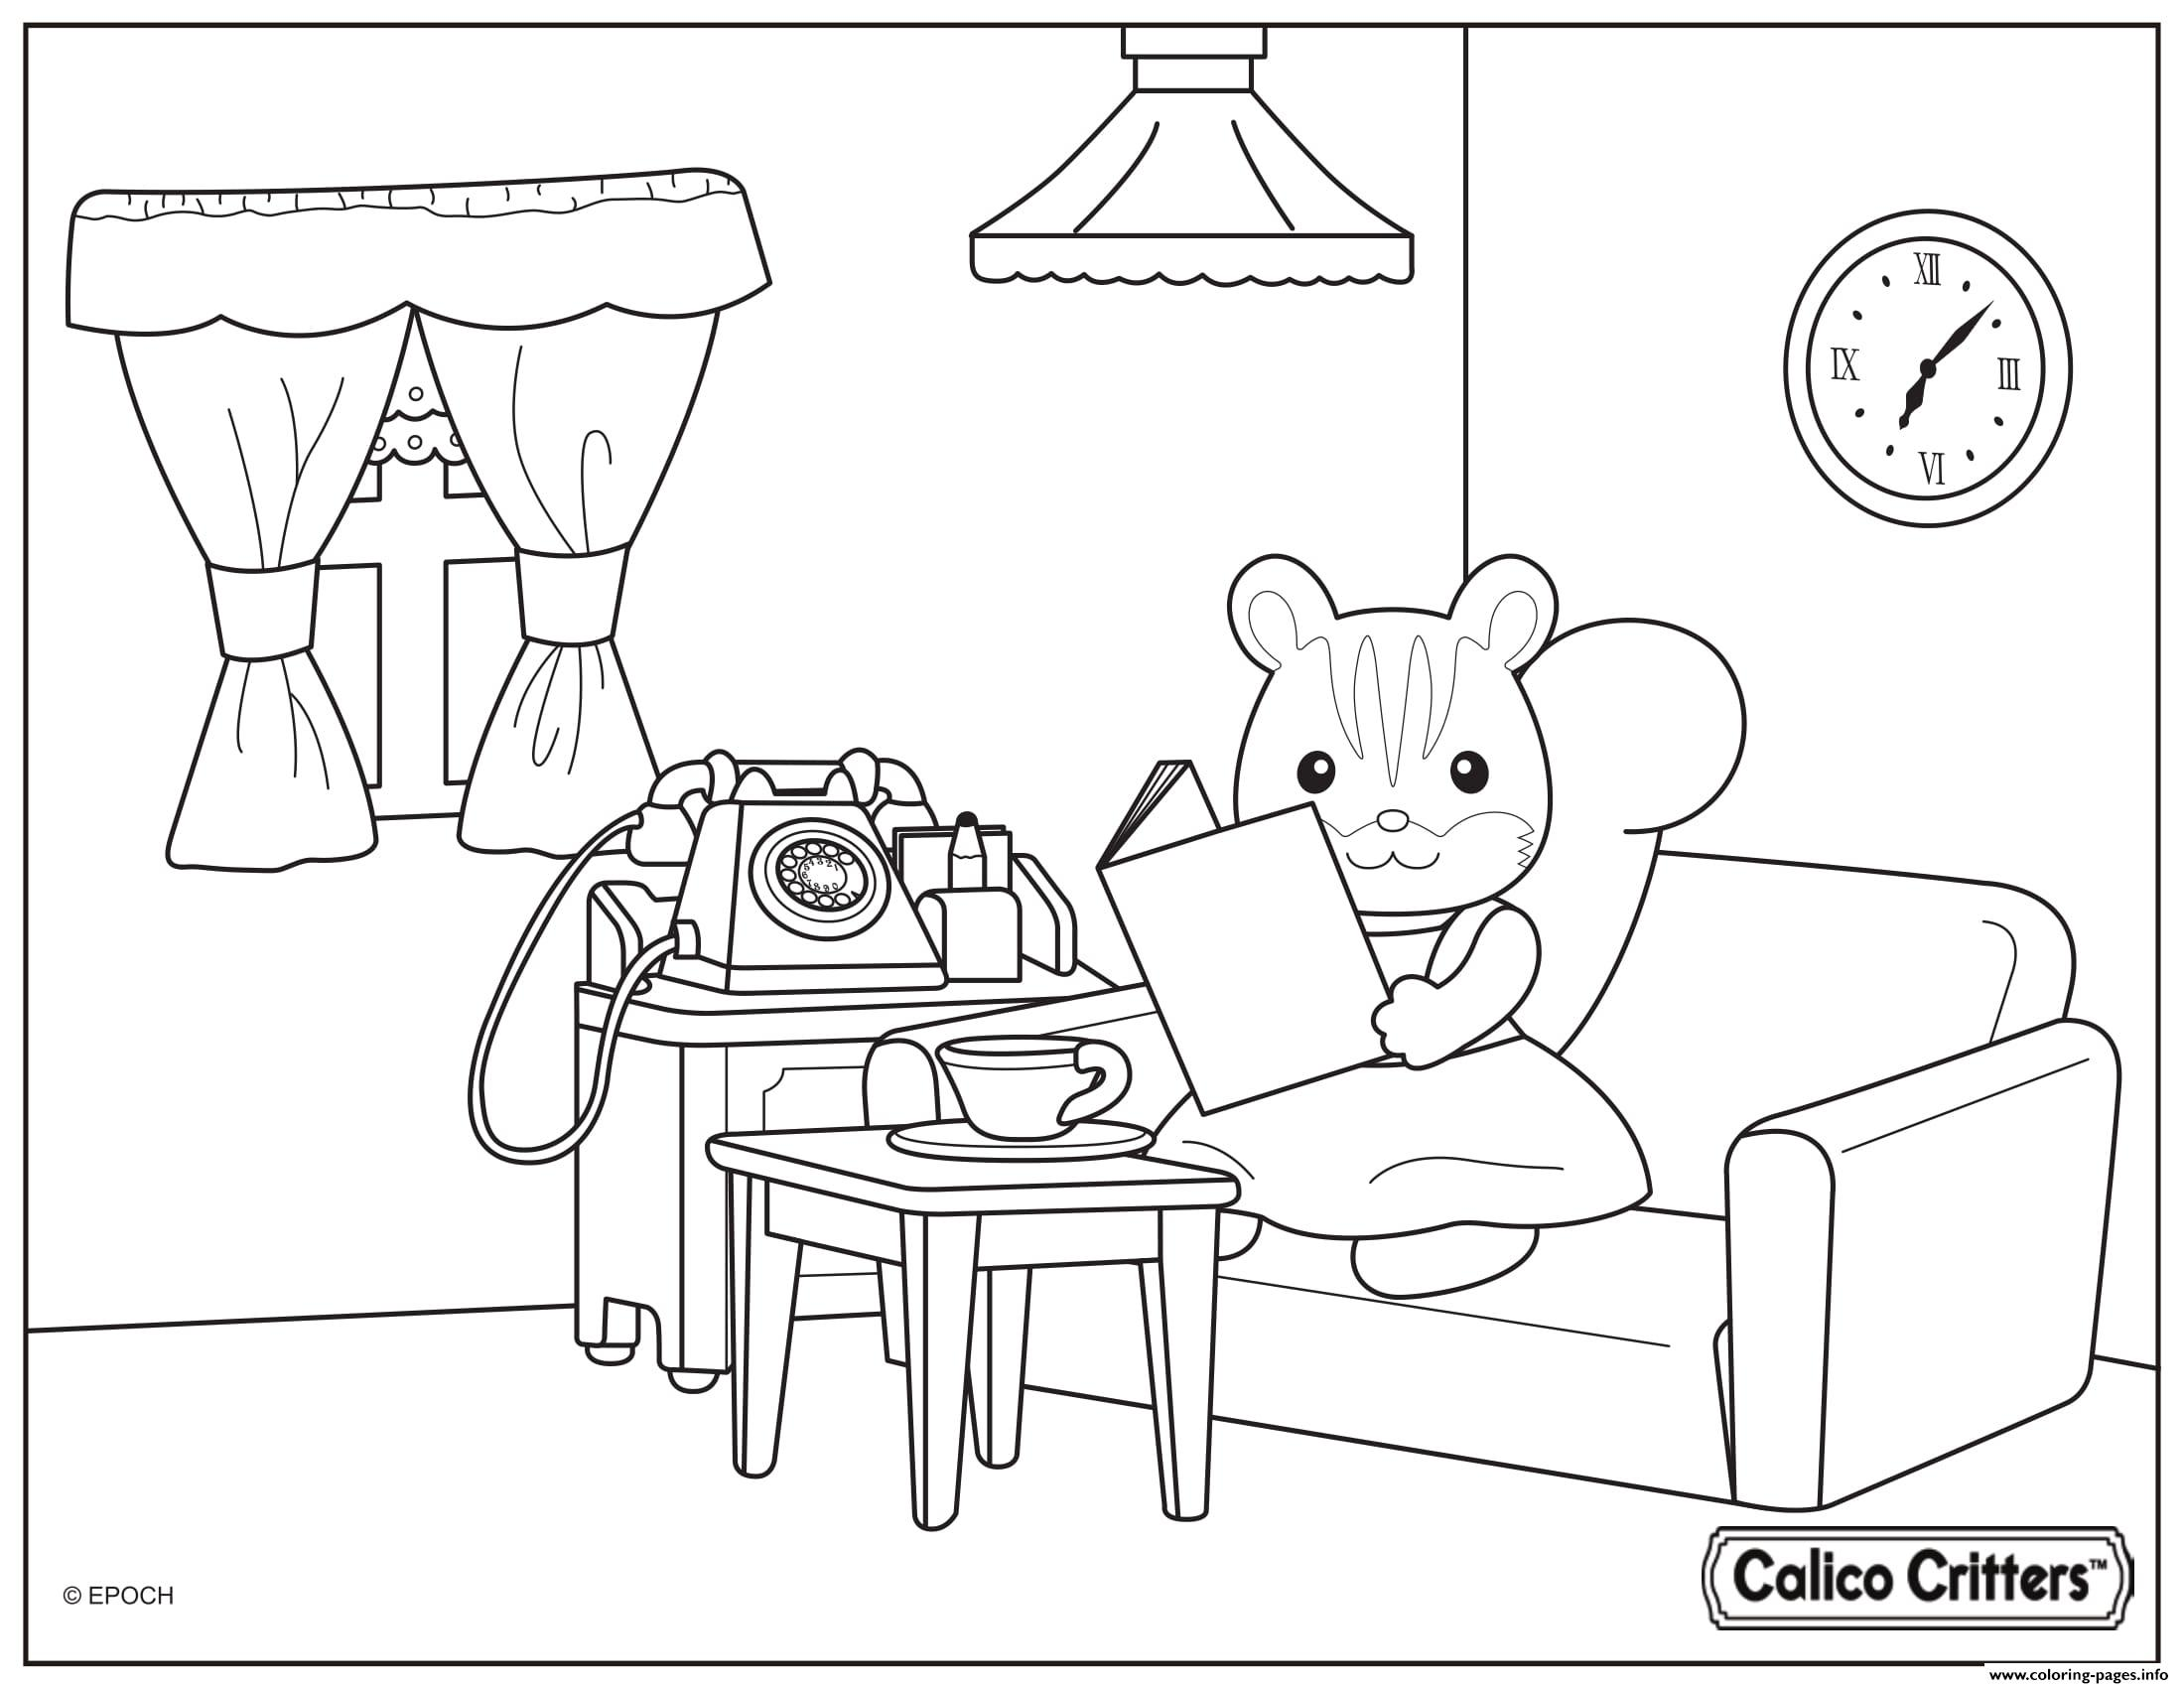 Calico Critters Reading A Book With Coffee coloring pages